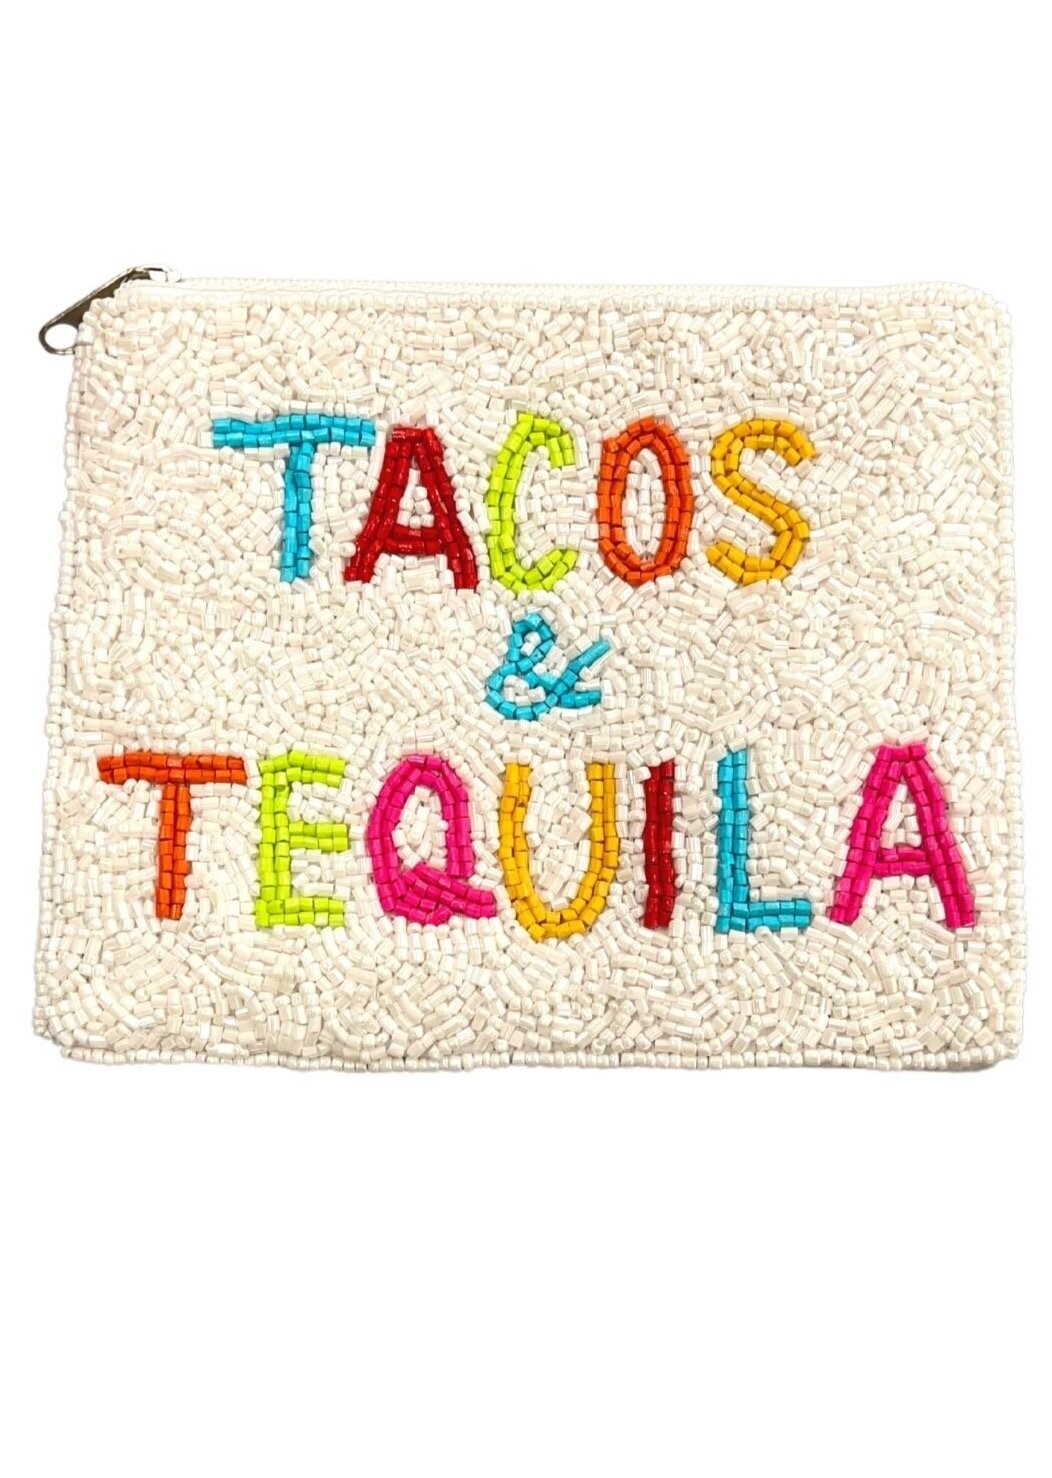 Taco &  Tequila Pouch